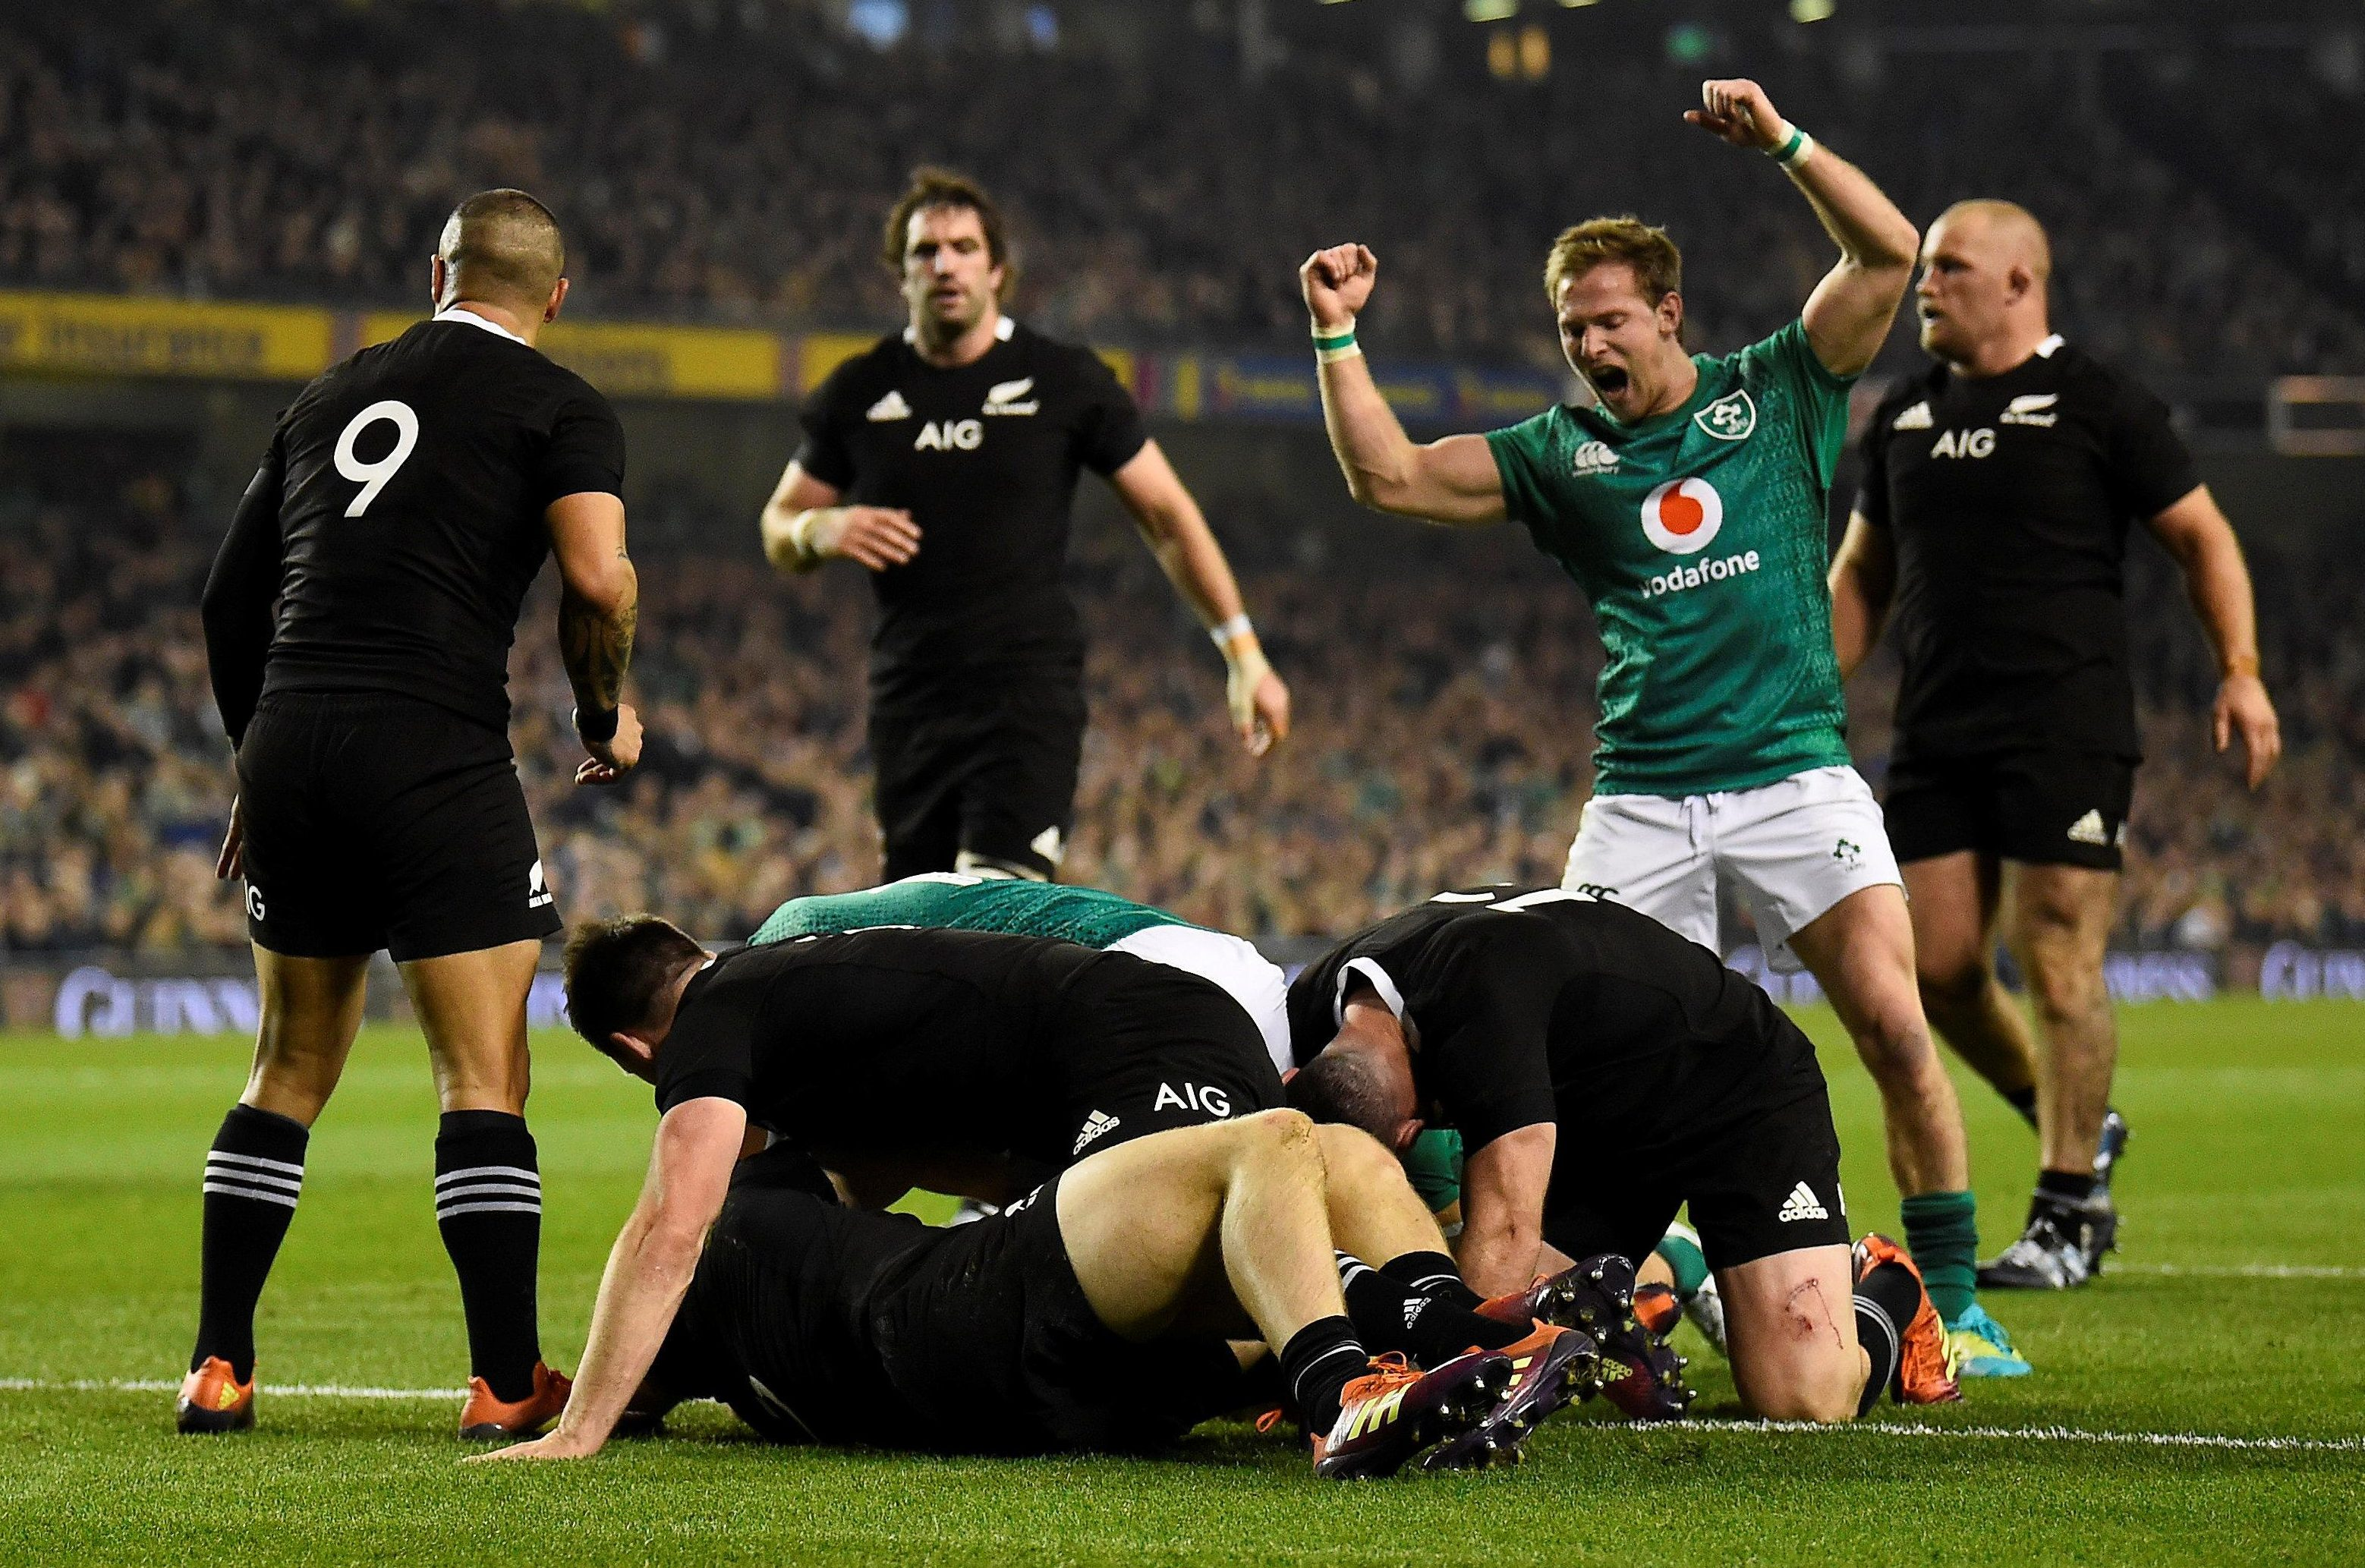 Ireland's Kieran Marmion shows the intensity of the home side in theri absorbing clash with the All Blacks